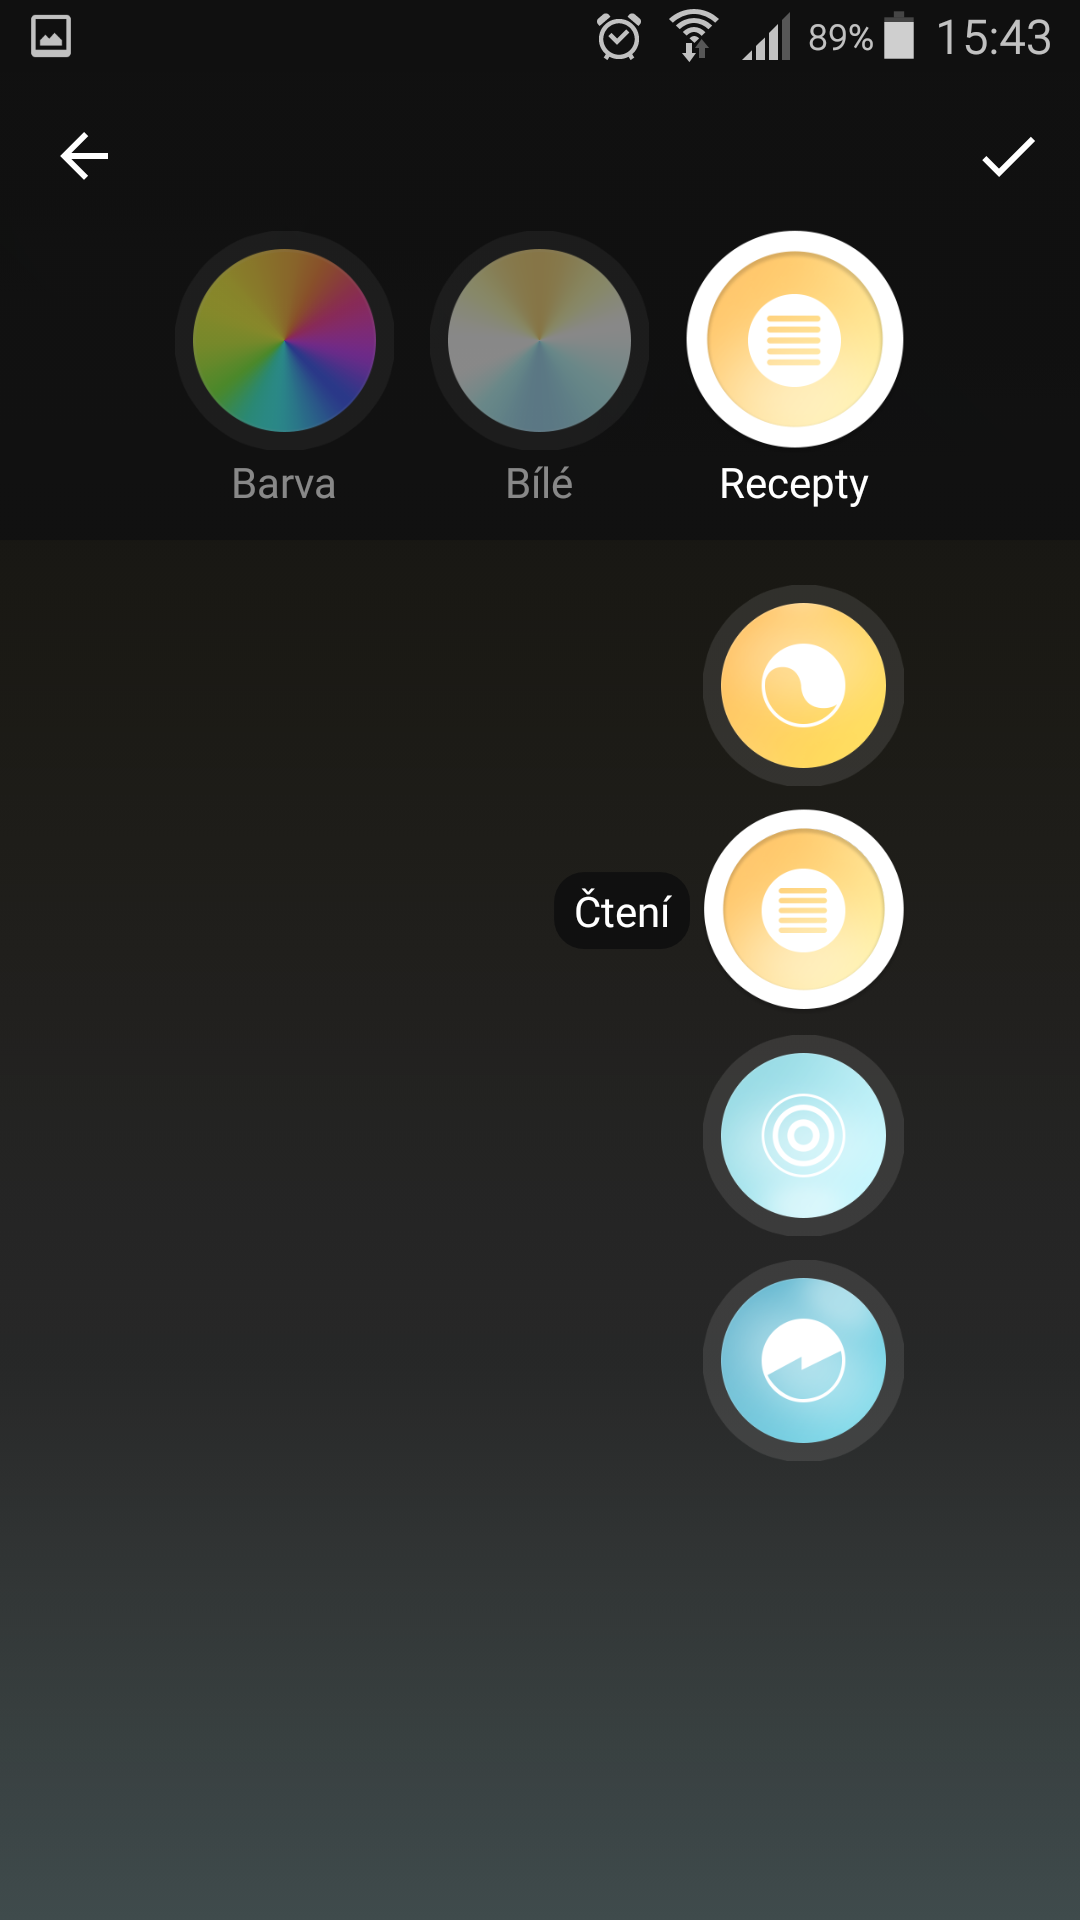 philips-hue-recenze-screenshot-14-esvetlo